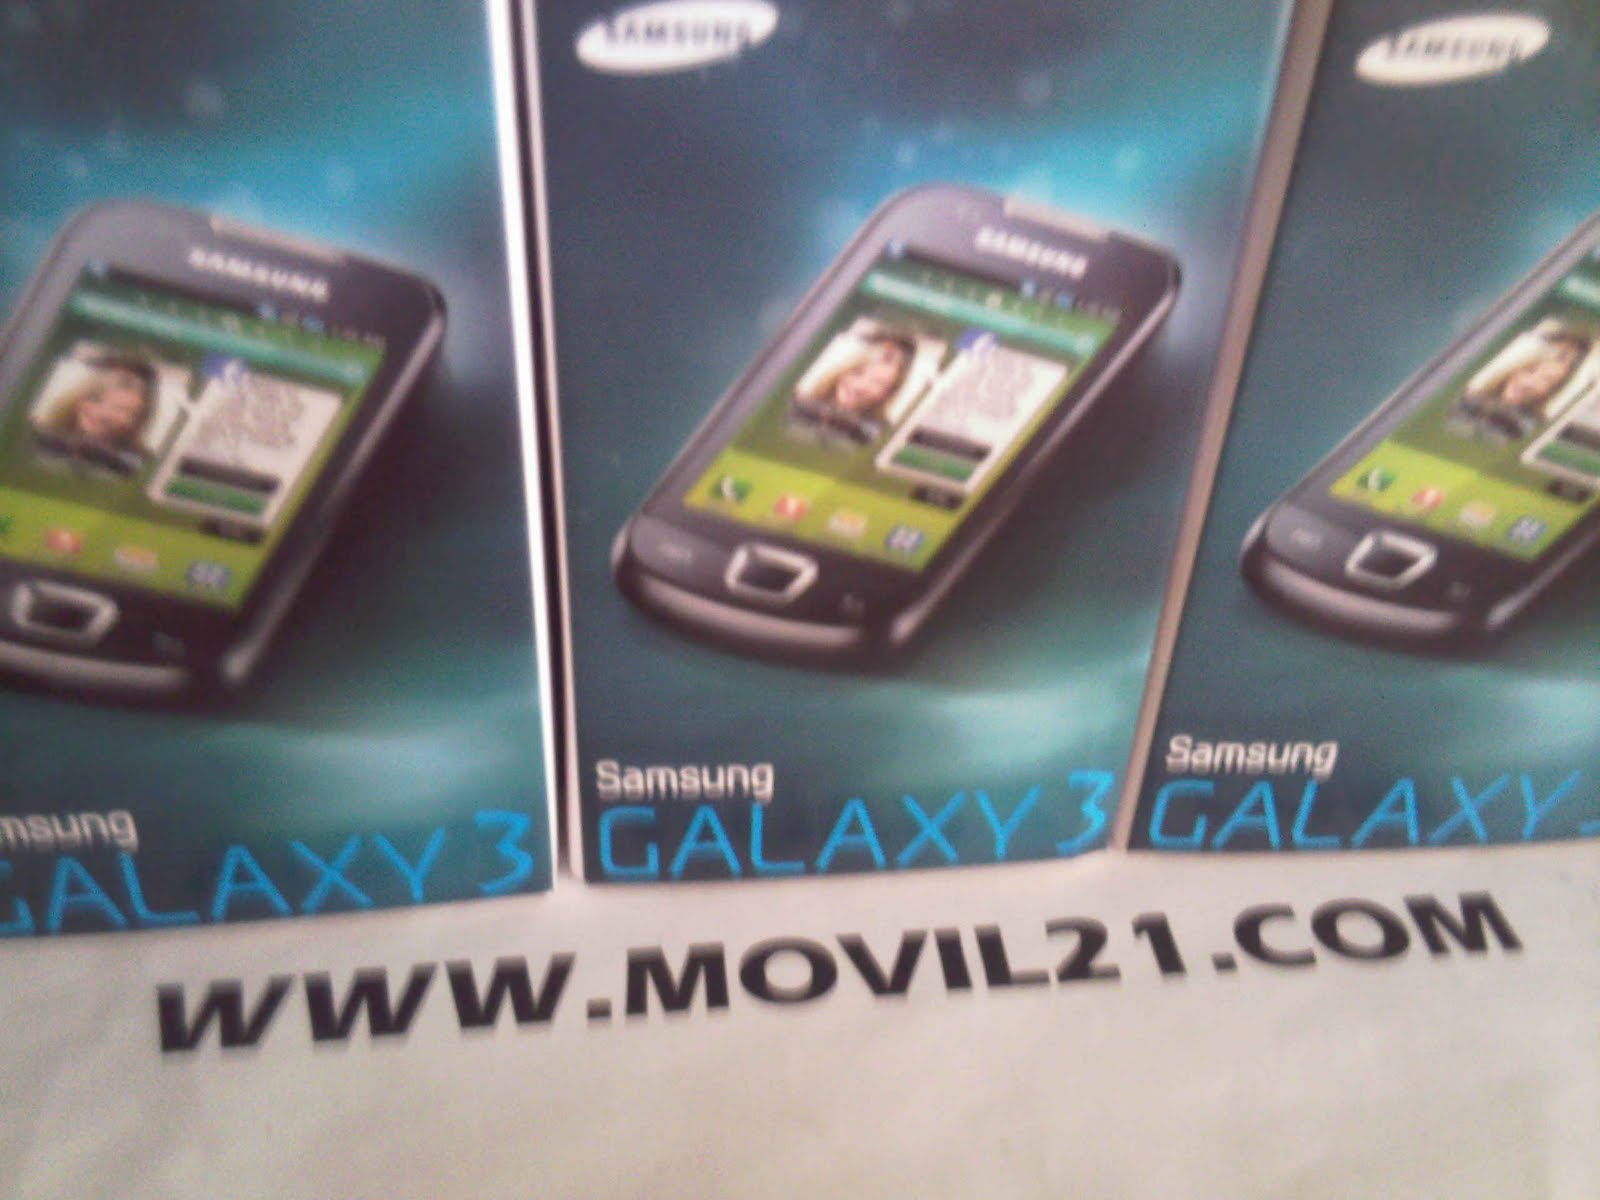 and aug software c3322 c mobile me free software whatsup